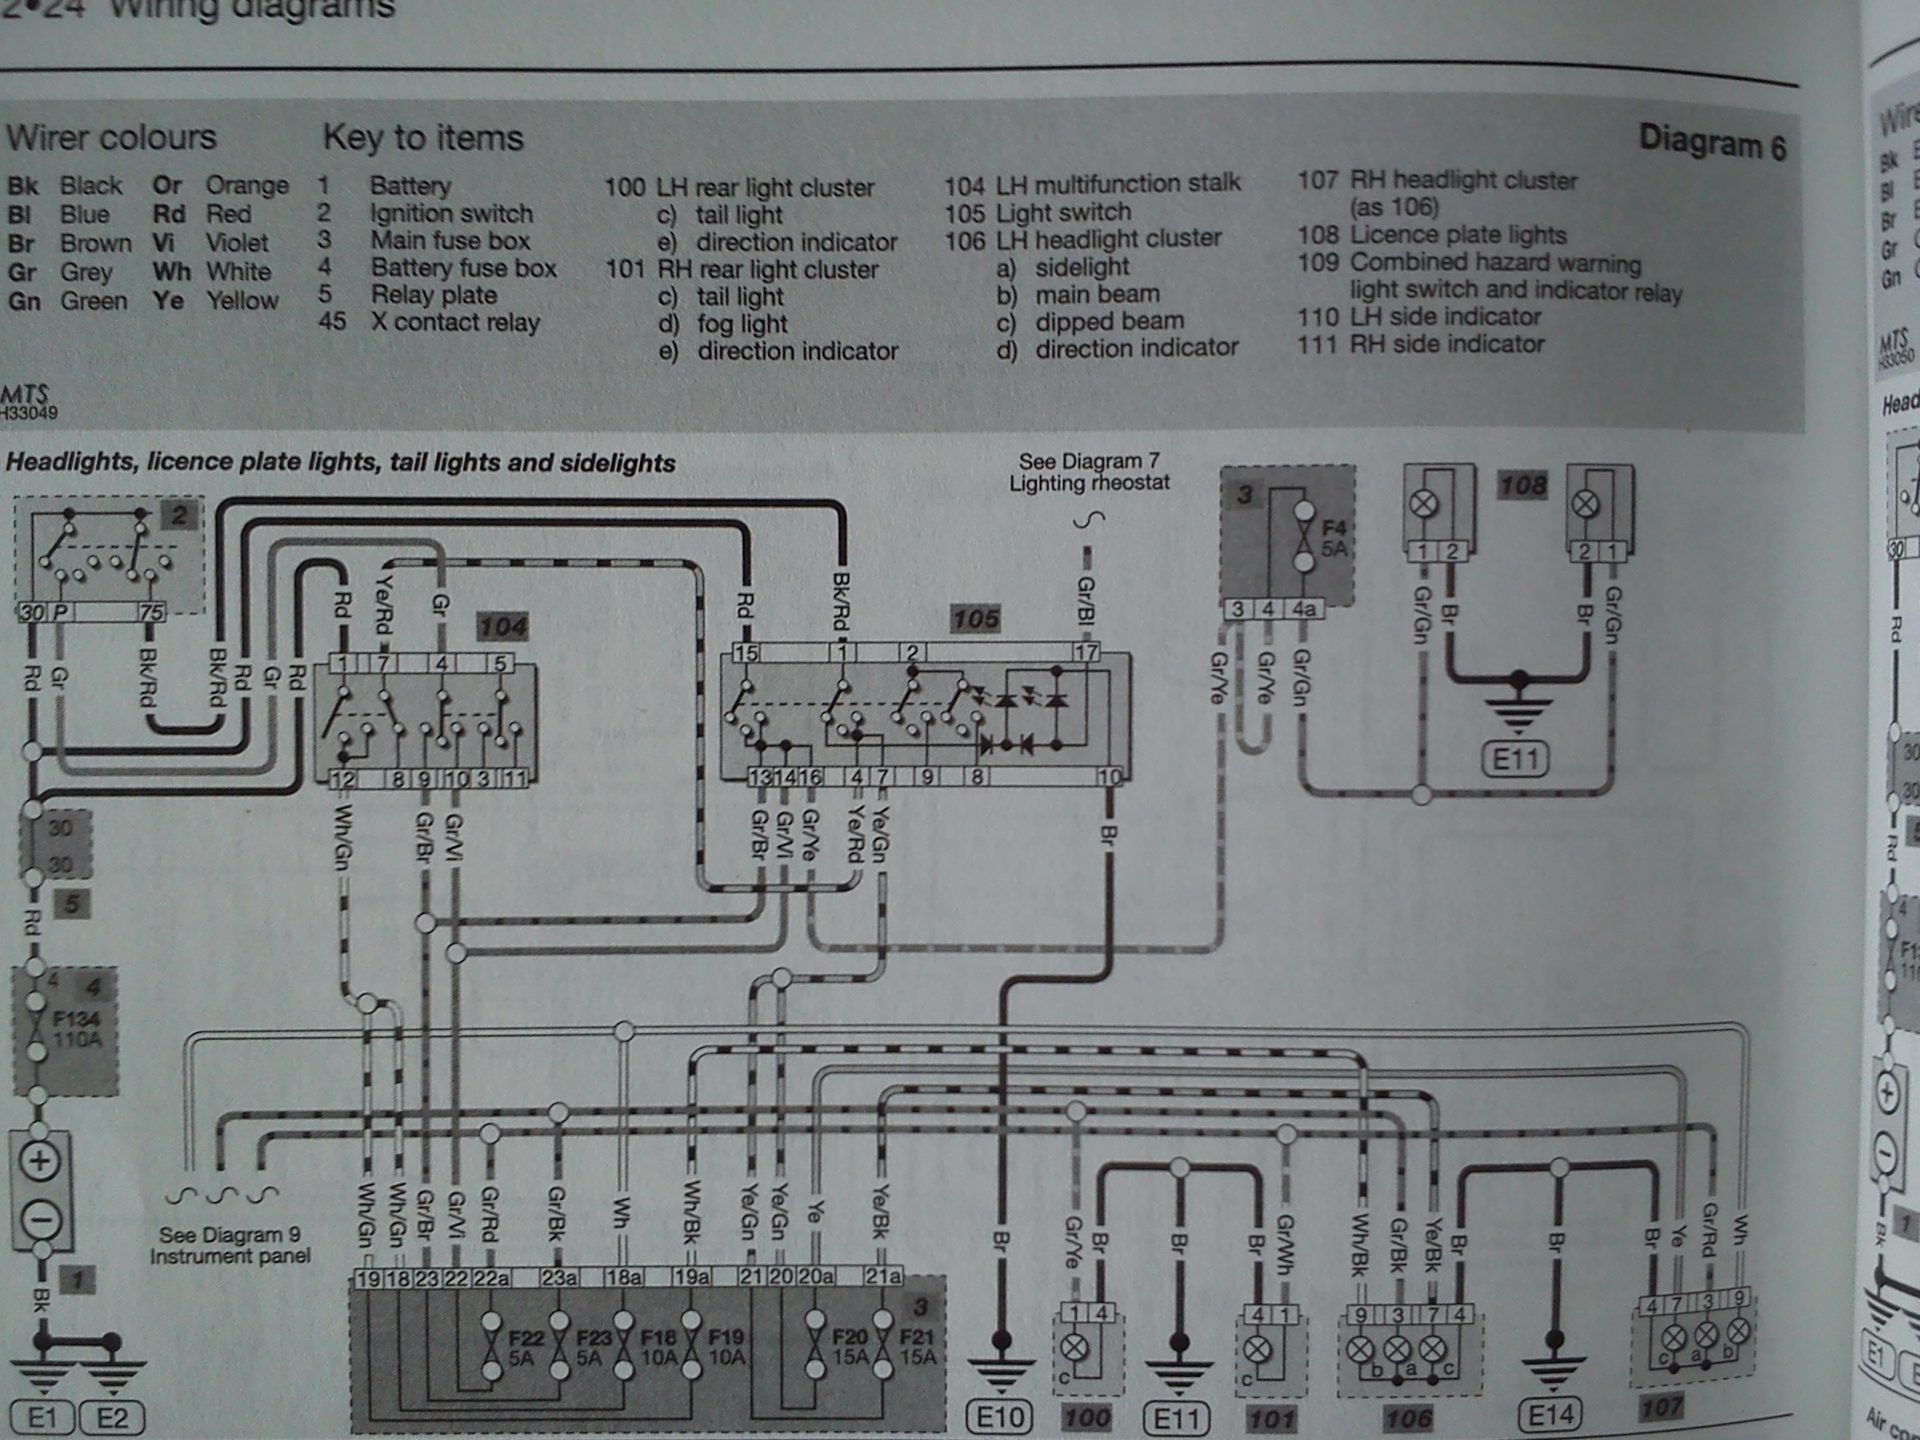 Wiring Diagram For Audi A4 Towbar Diagram Diagramtemplate Diagramsample